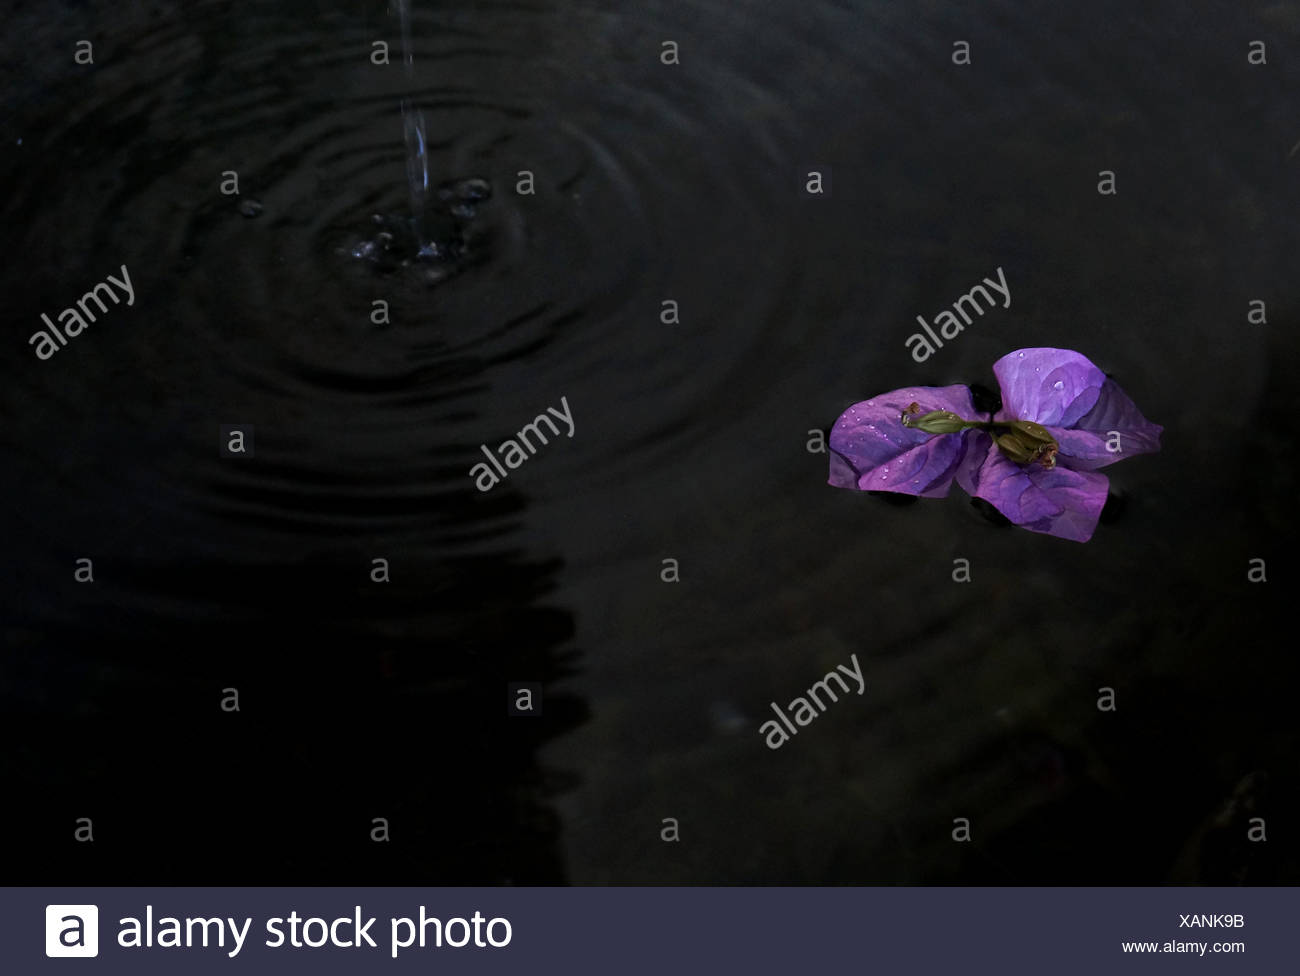 High Angle View Of Purple Flower in Pond Photo Stock